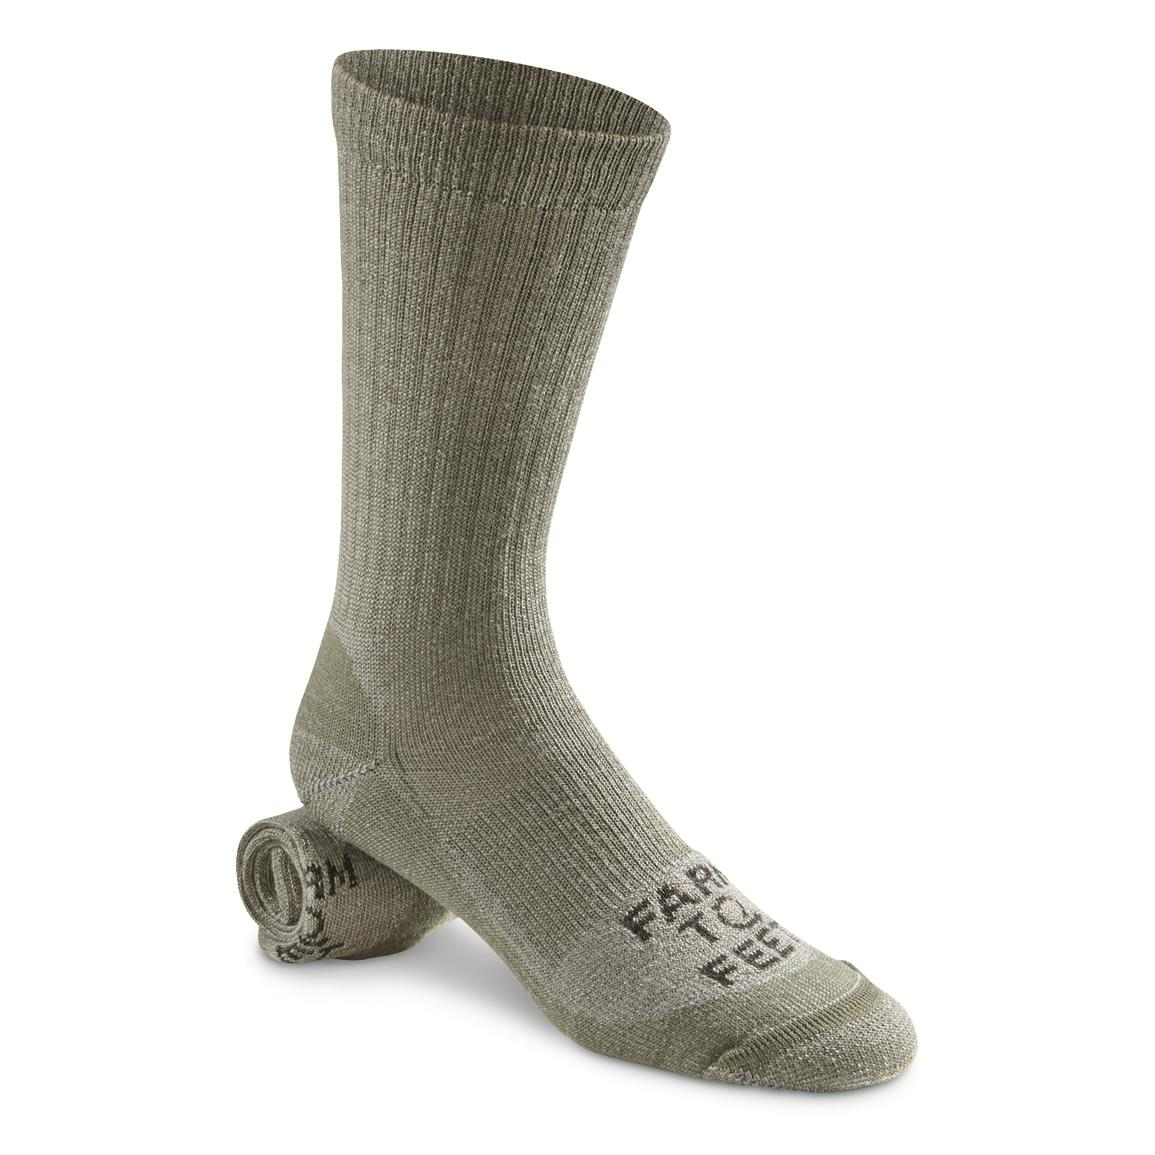 Farm to Feet Coronado Lightweight Crew Socks, Sage Green